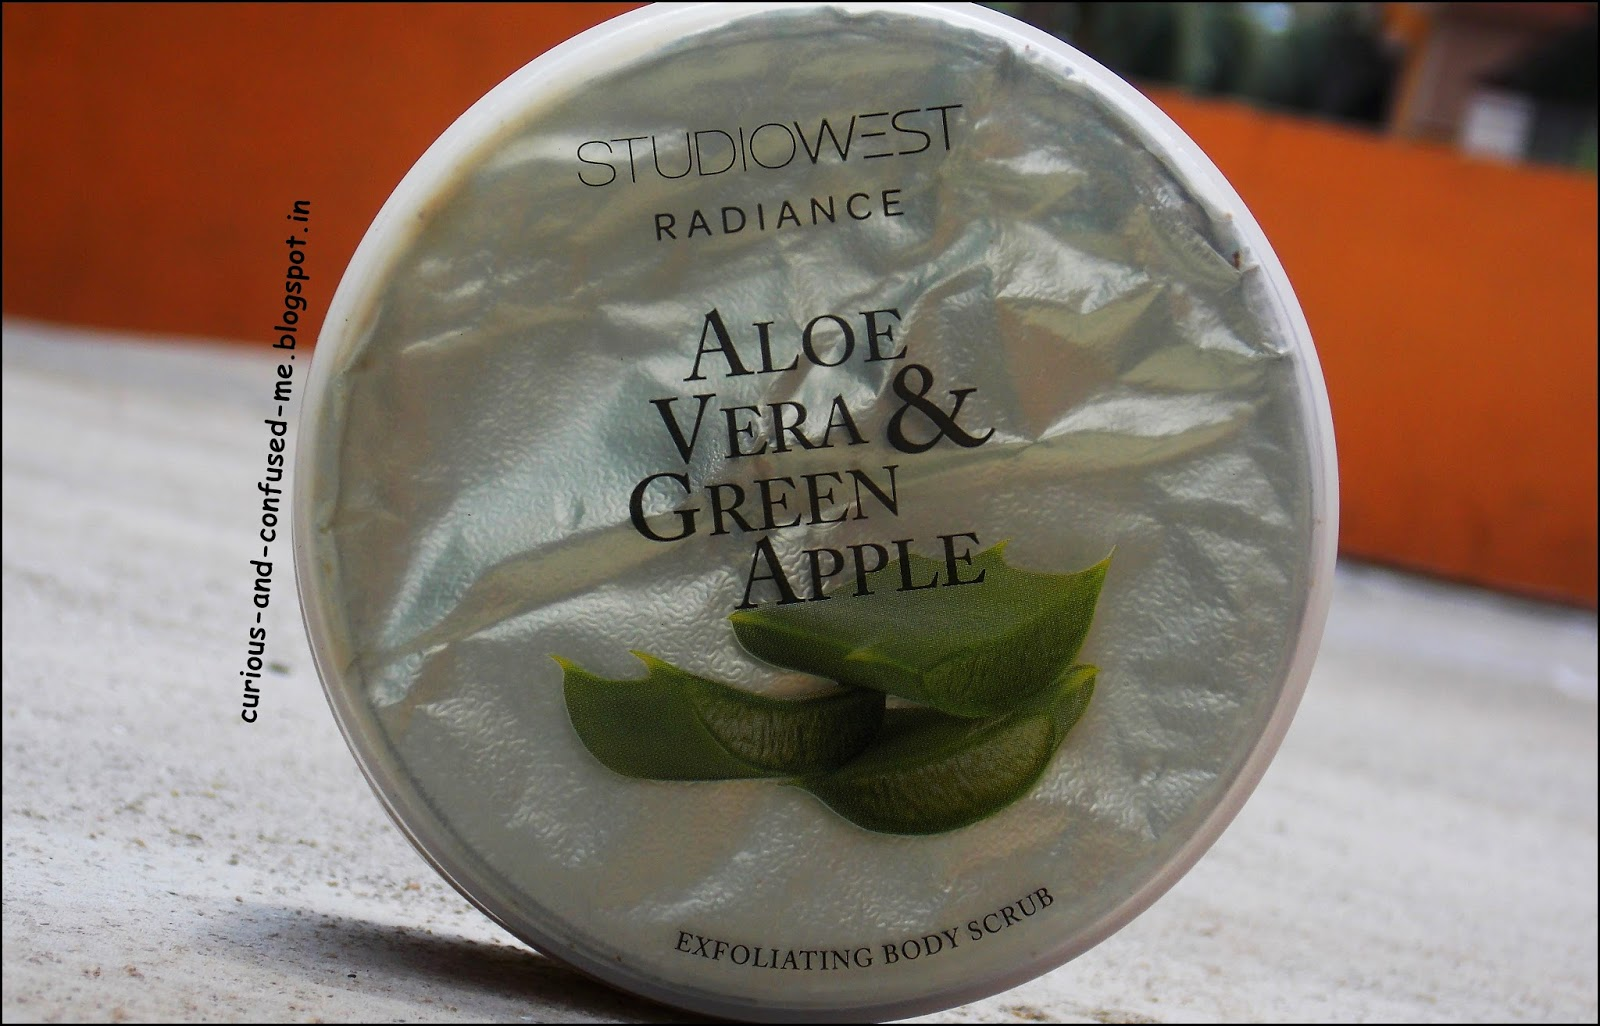 RADIANCE by StudioWest Aloe Vera & Green Apple Body scrub review, StudioWest Aloe Vera & Green Apple Body scrub review, Westside products review, StudioWest Aloe Vera and Green Apple, Radiance body scrub review, Affordable body scrub India review, Indian beauty blog, Westside product review.